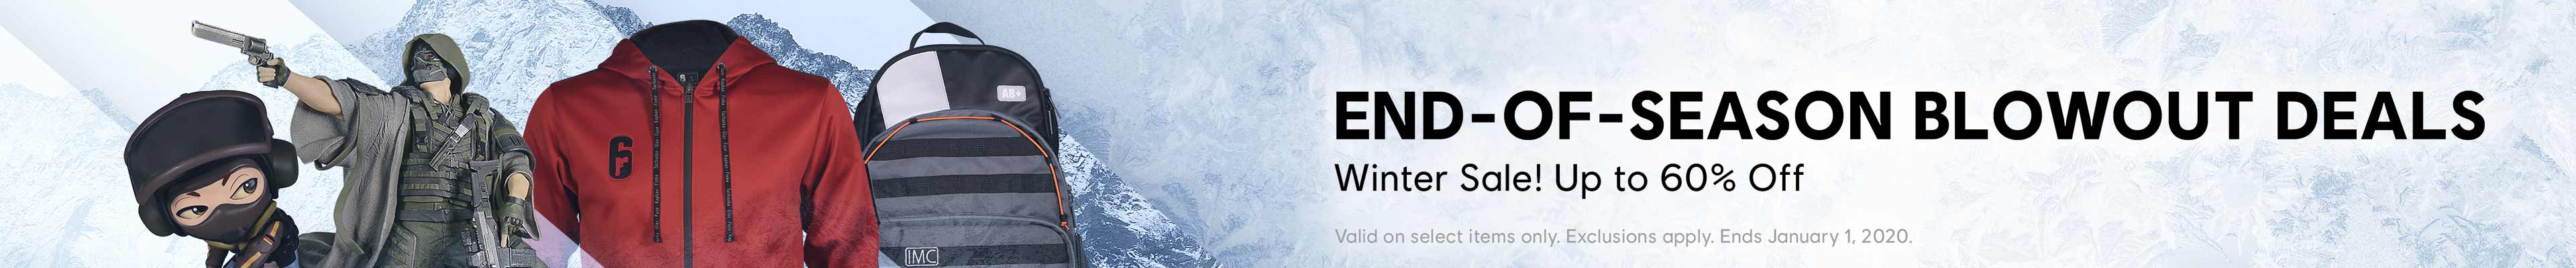 winter sale merchandise 2019